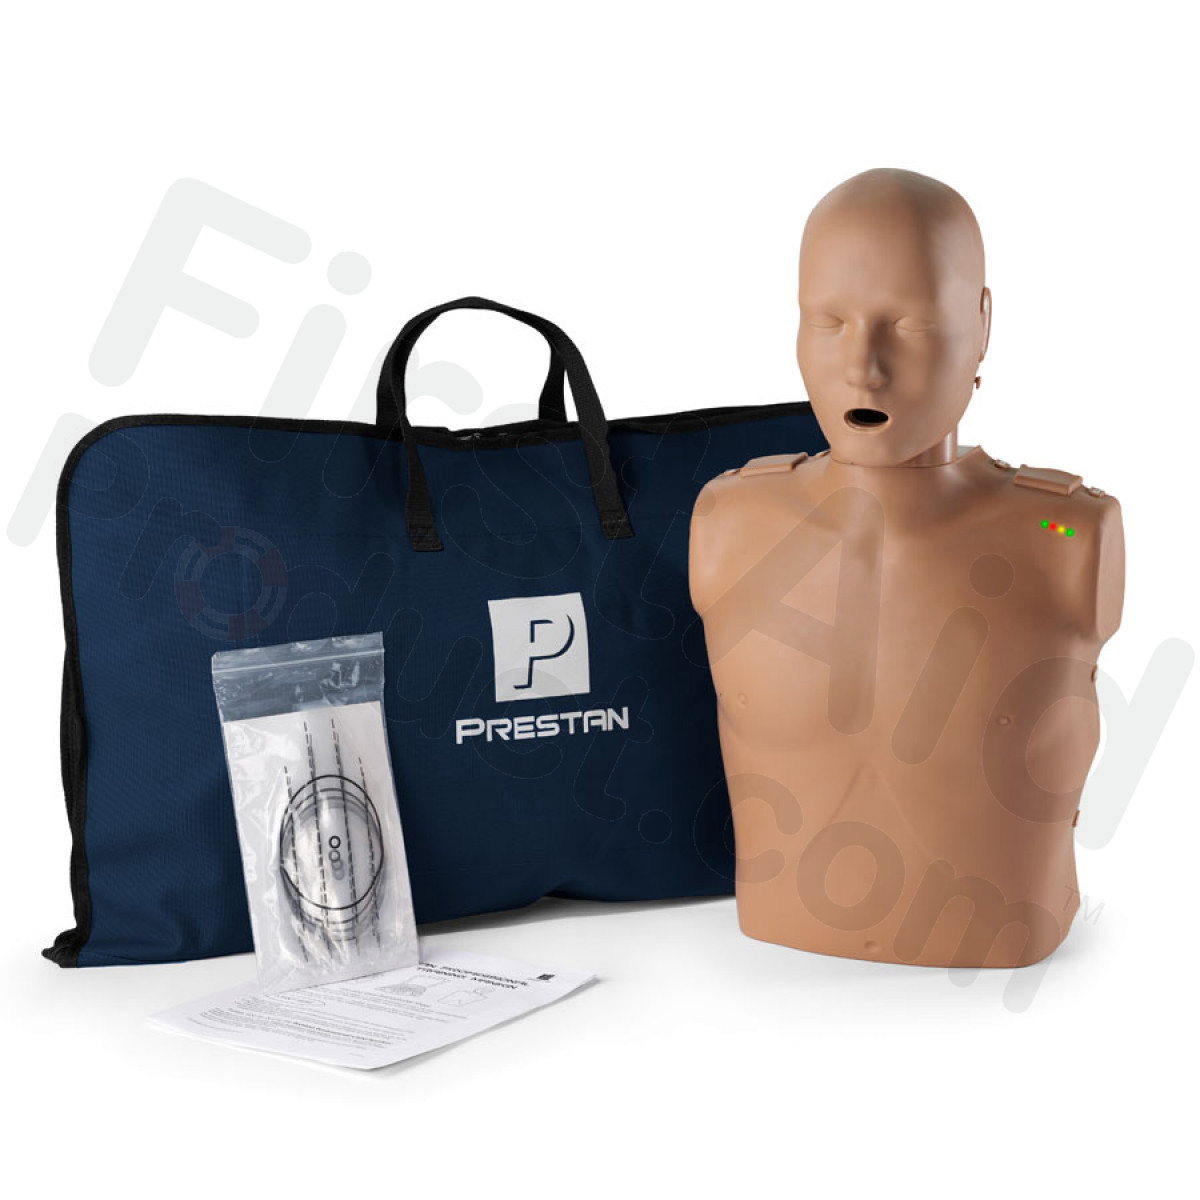 e1135f953d8 First-Aid-Product.com: Prestan Adult Dark Skin CPR-AED Training ...